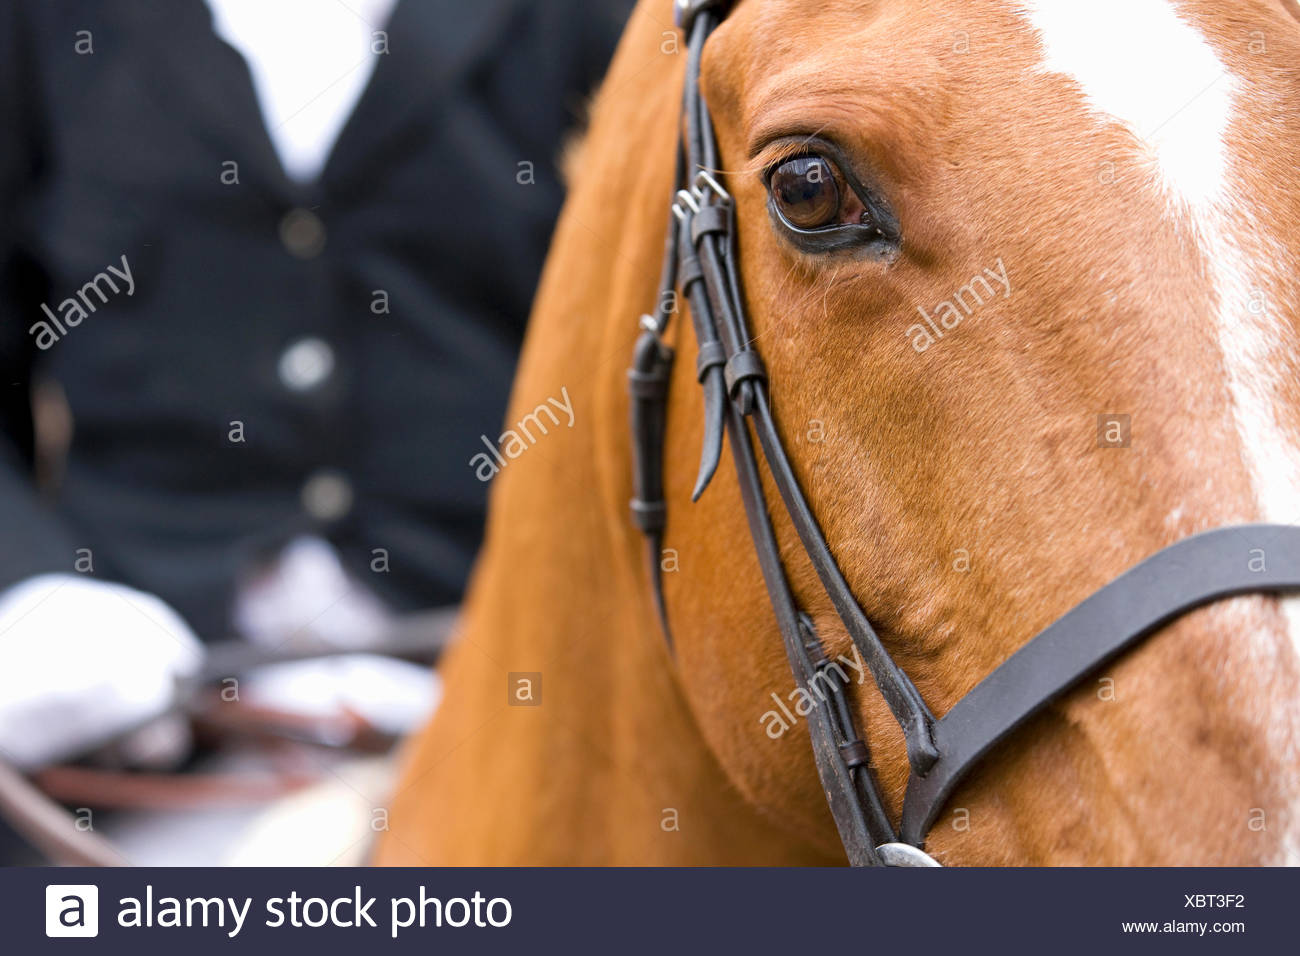 Close-up of horse's head with rider in background - Stock Image